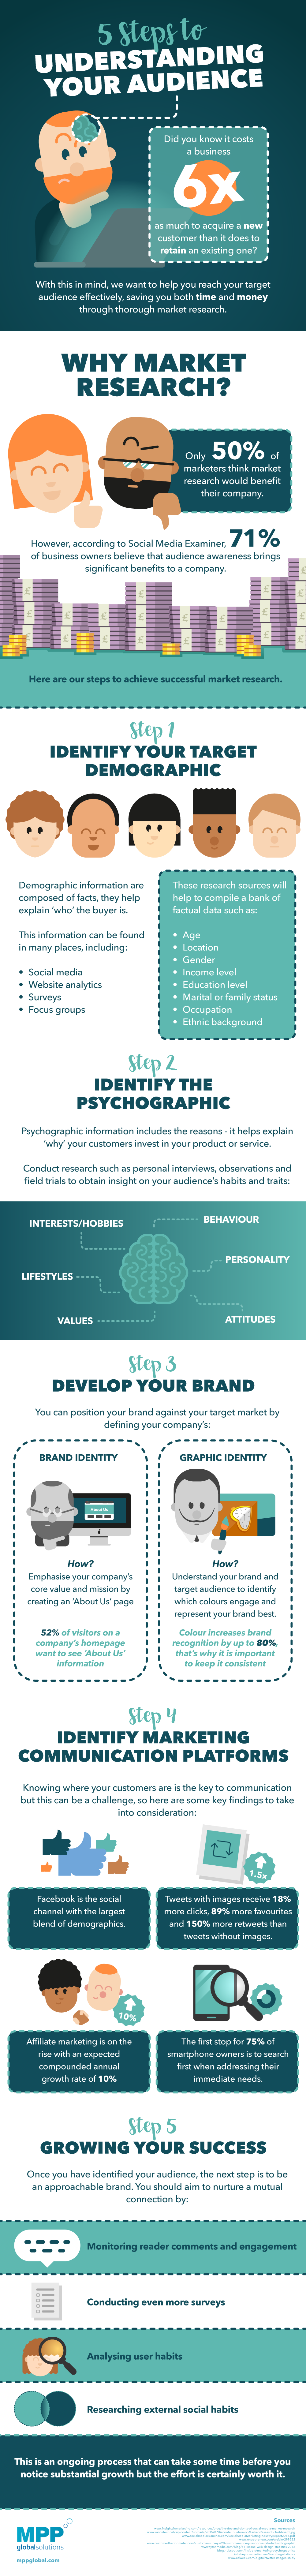 5-steps-to-understanding-your-audience